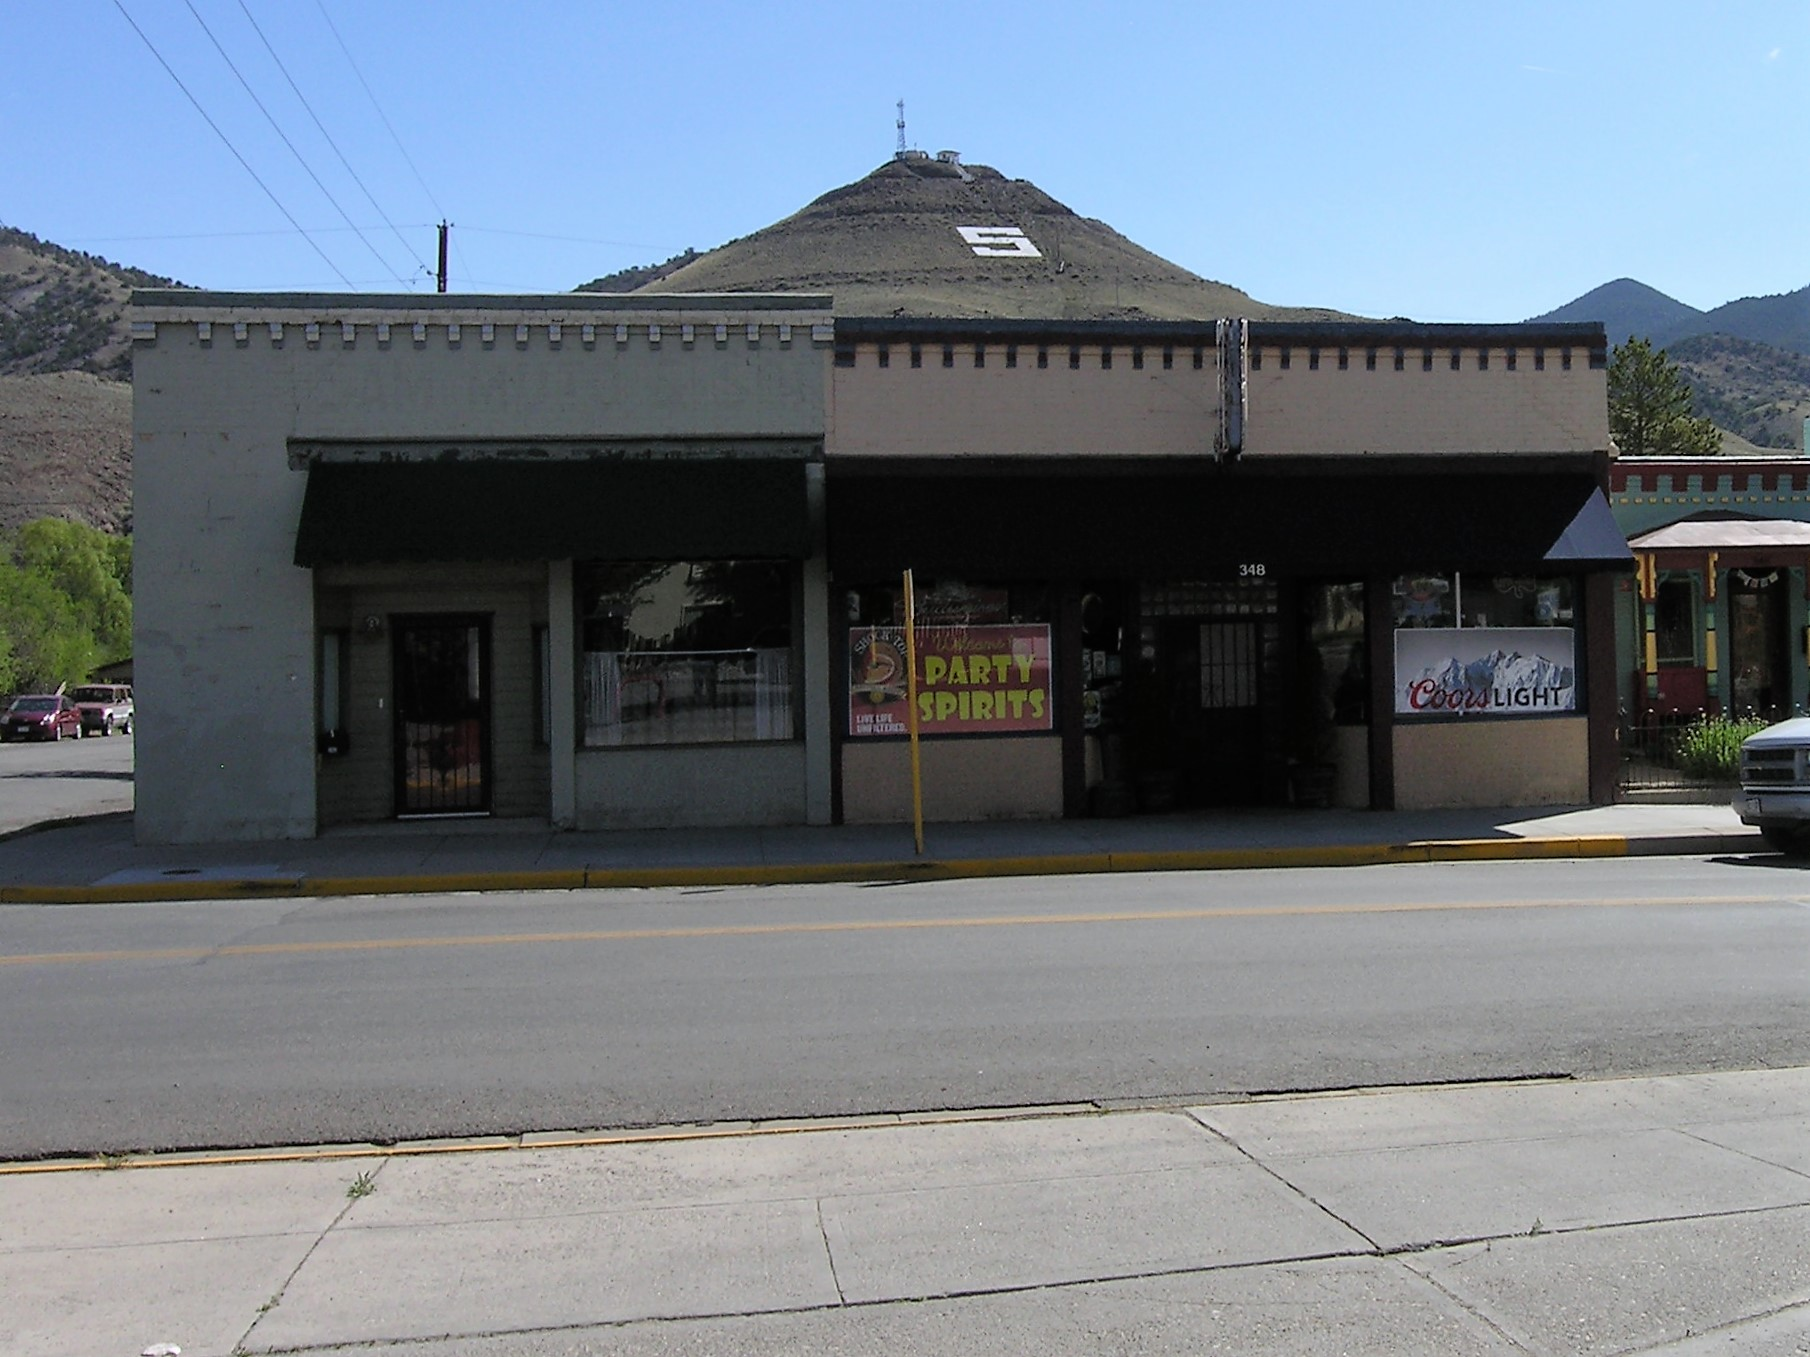 Remarkable opportunity to own part of Salida